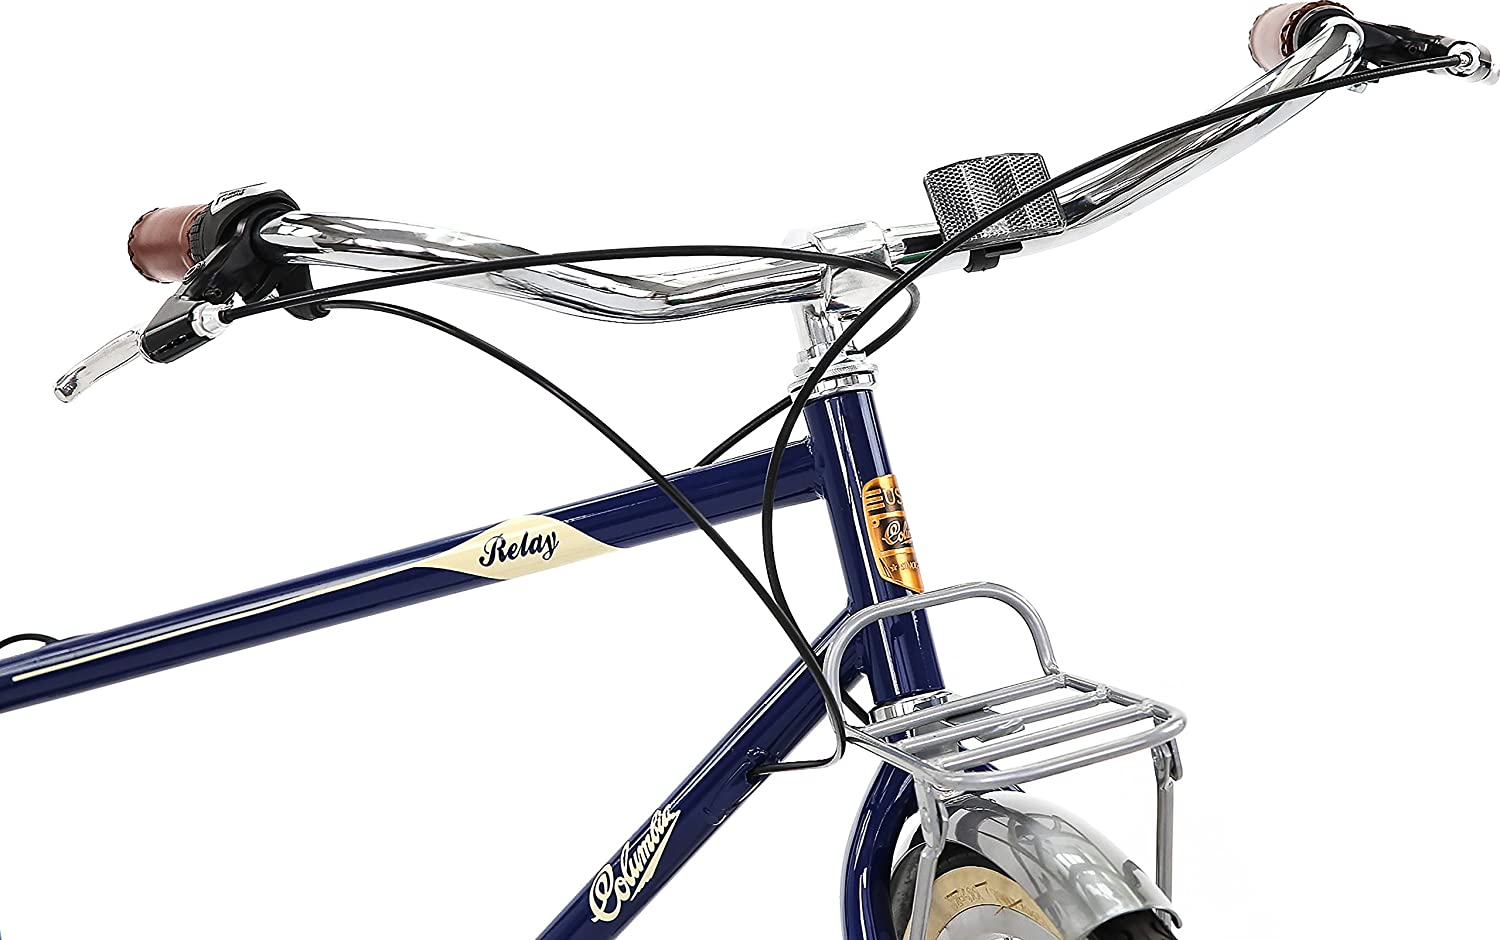 Columbia Bicycles Relay 700c Mens Vintage 3 Speed City Electric Bike Cruiser Blue 18 One Size Sports Outdoors